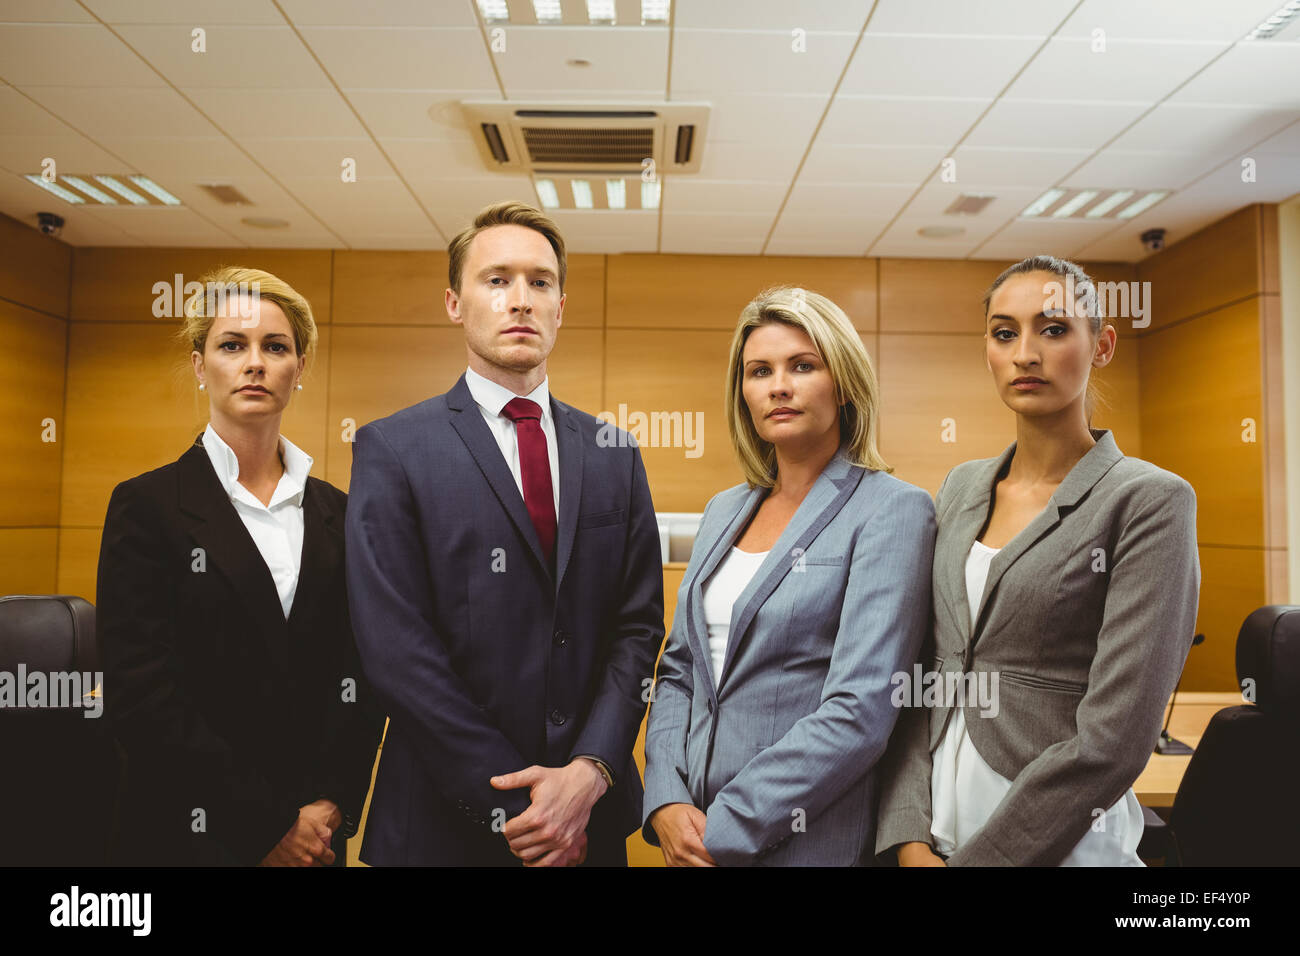 Portrait of four well-dressed lawyer - Stock Image